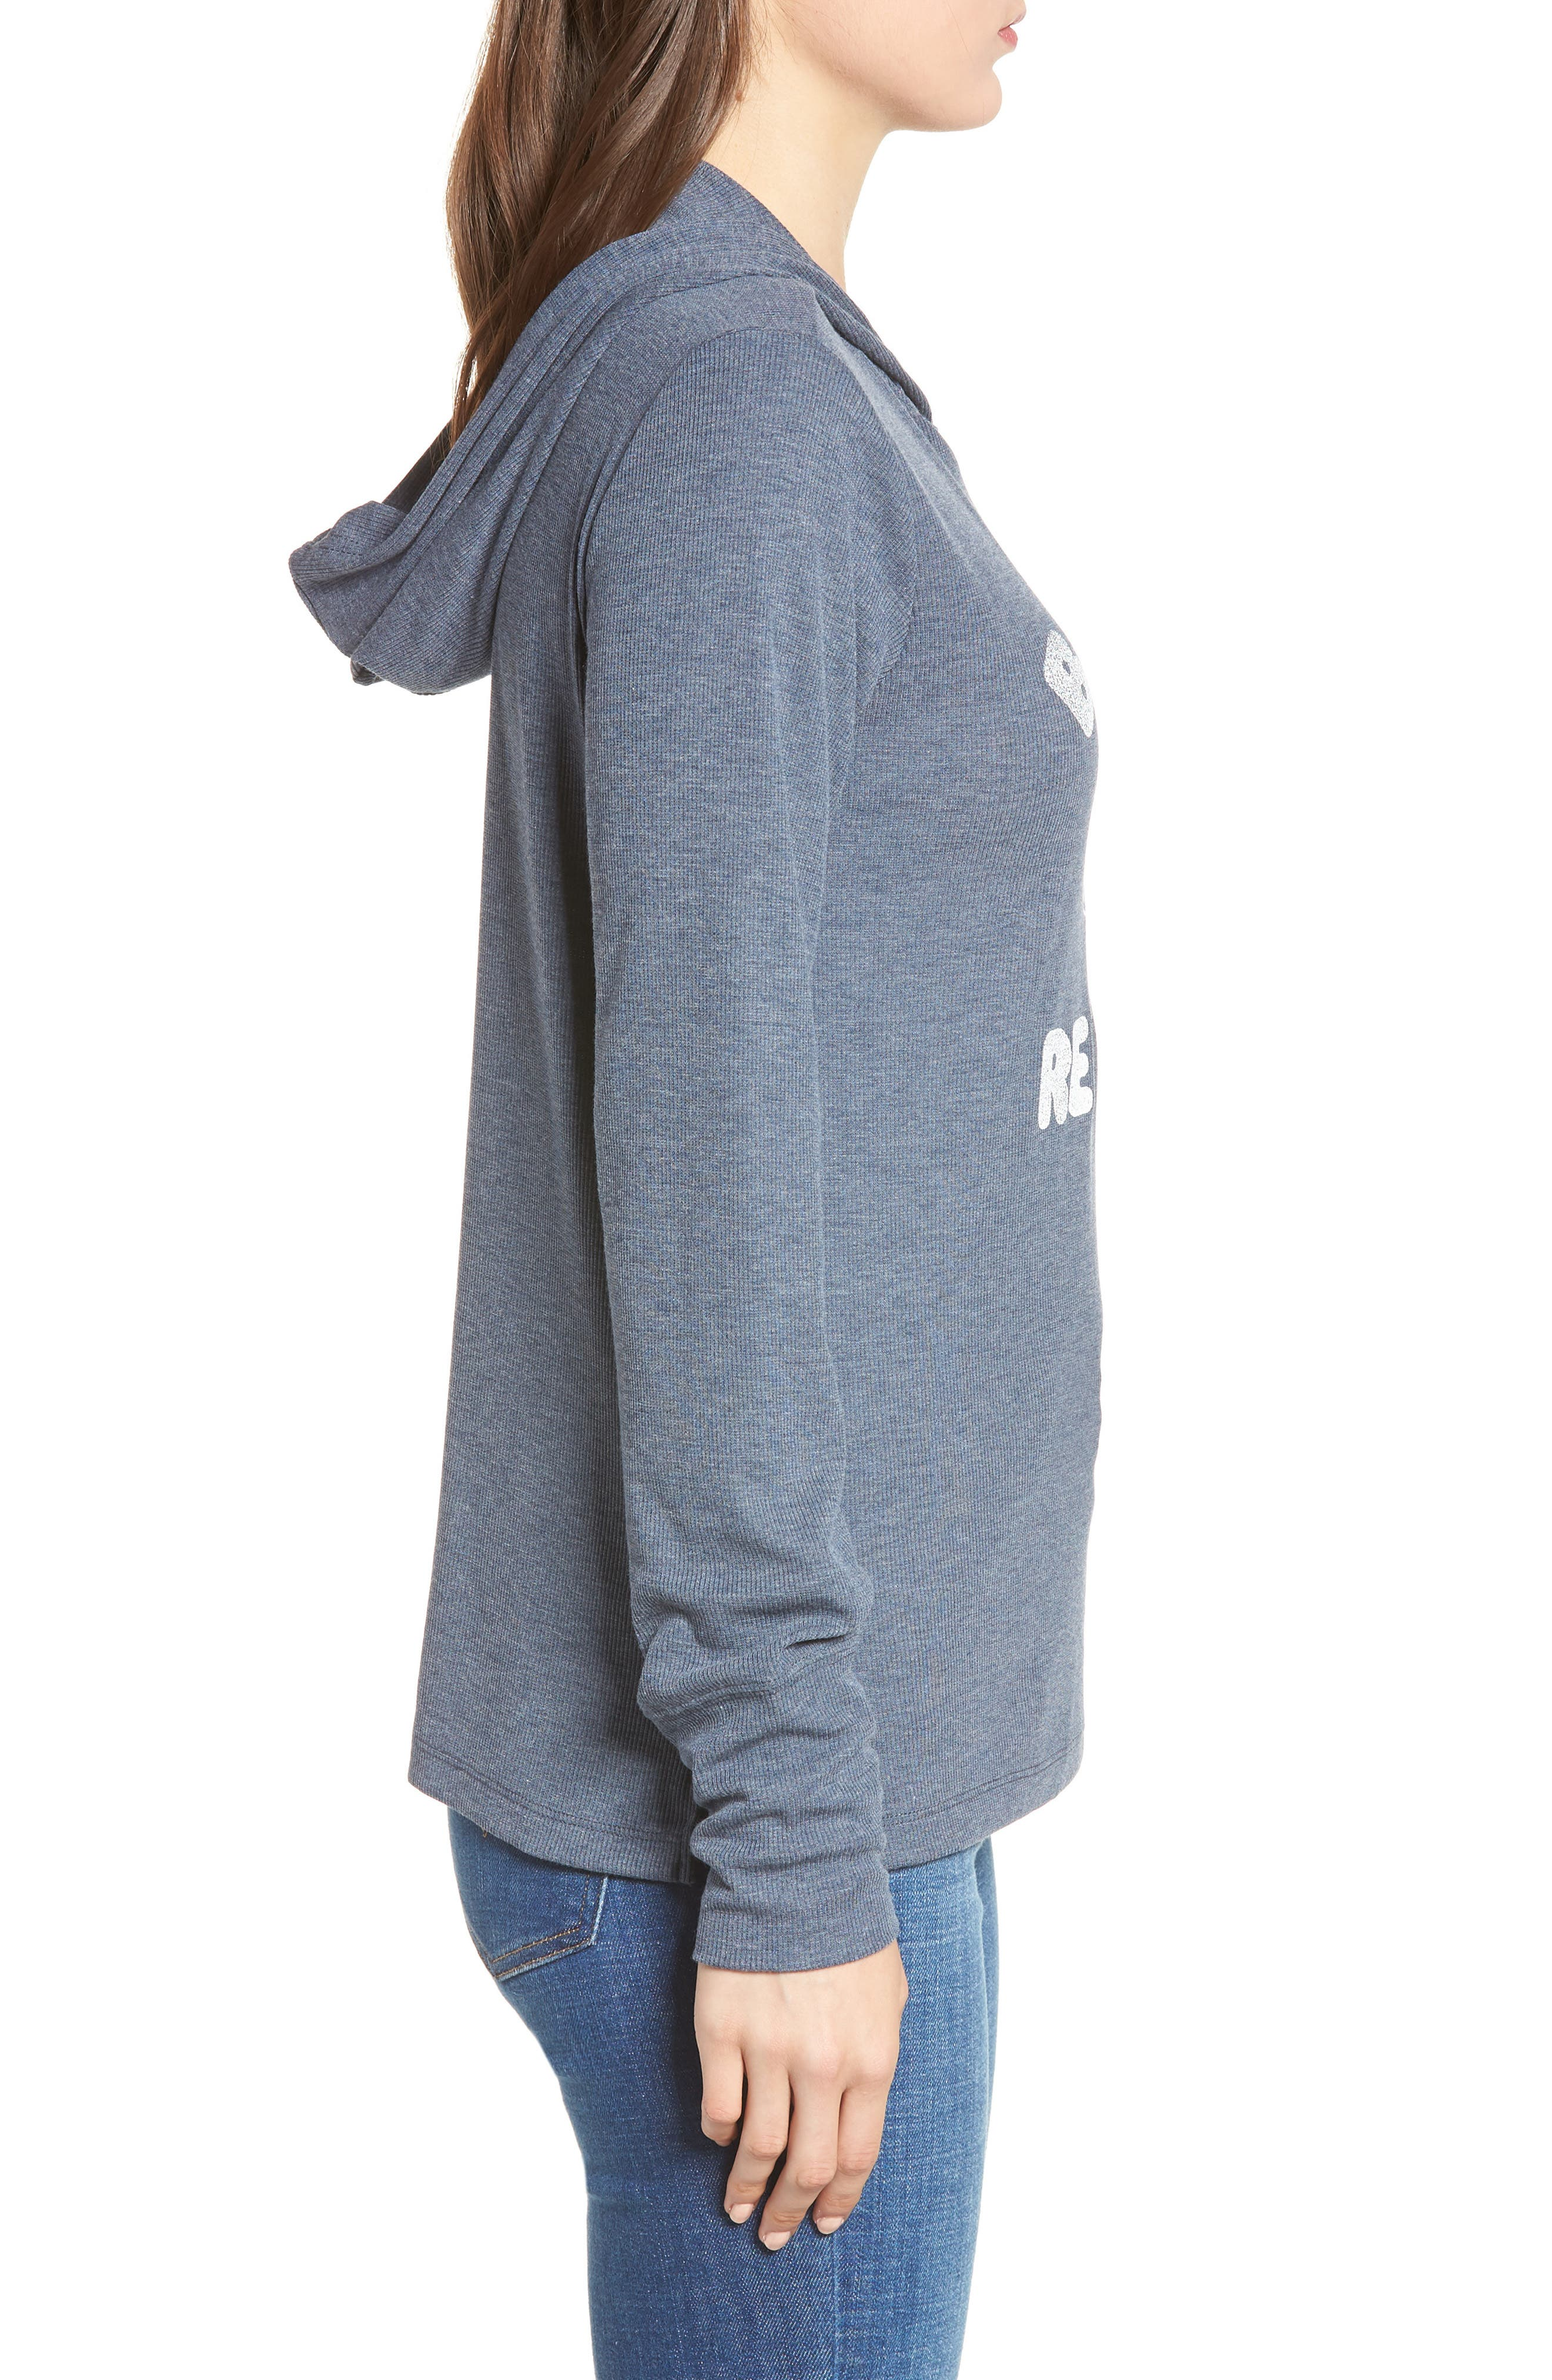 Campbell Boston Red Sox Rib Knit Hooded Top,                             Alternate thumbnail 3, color,                             Midnight